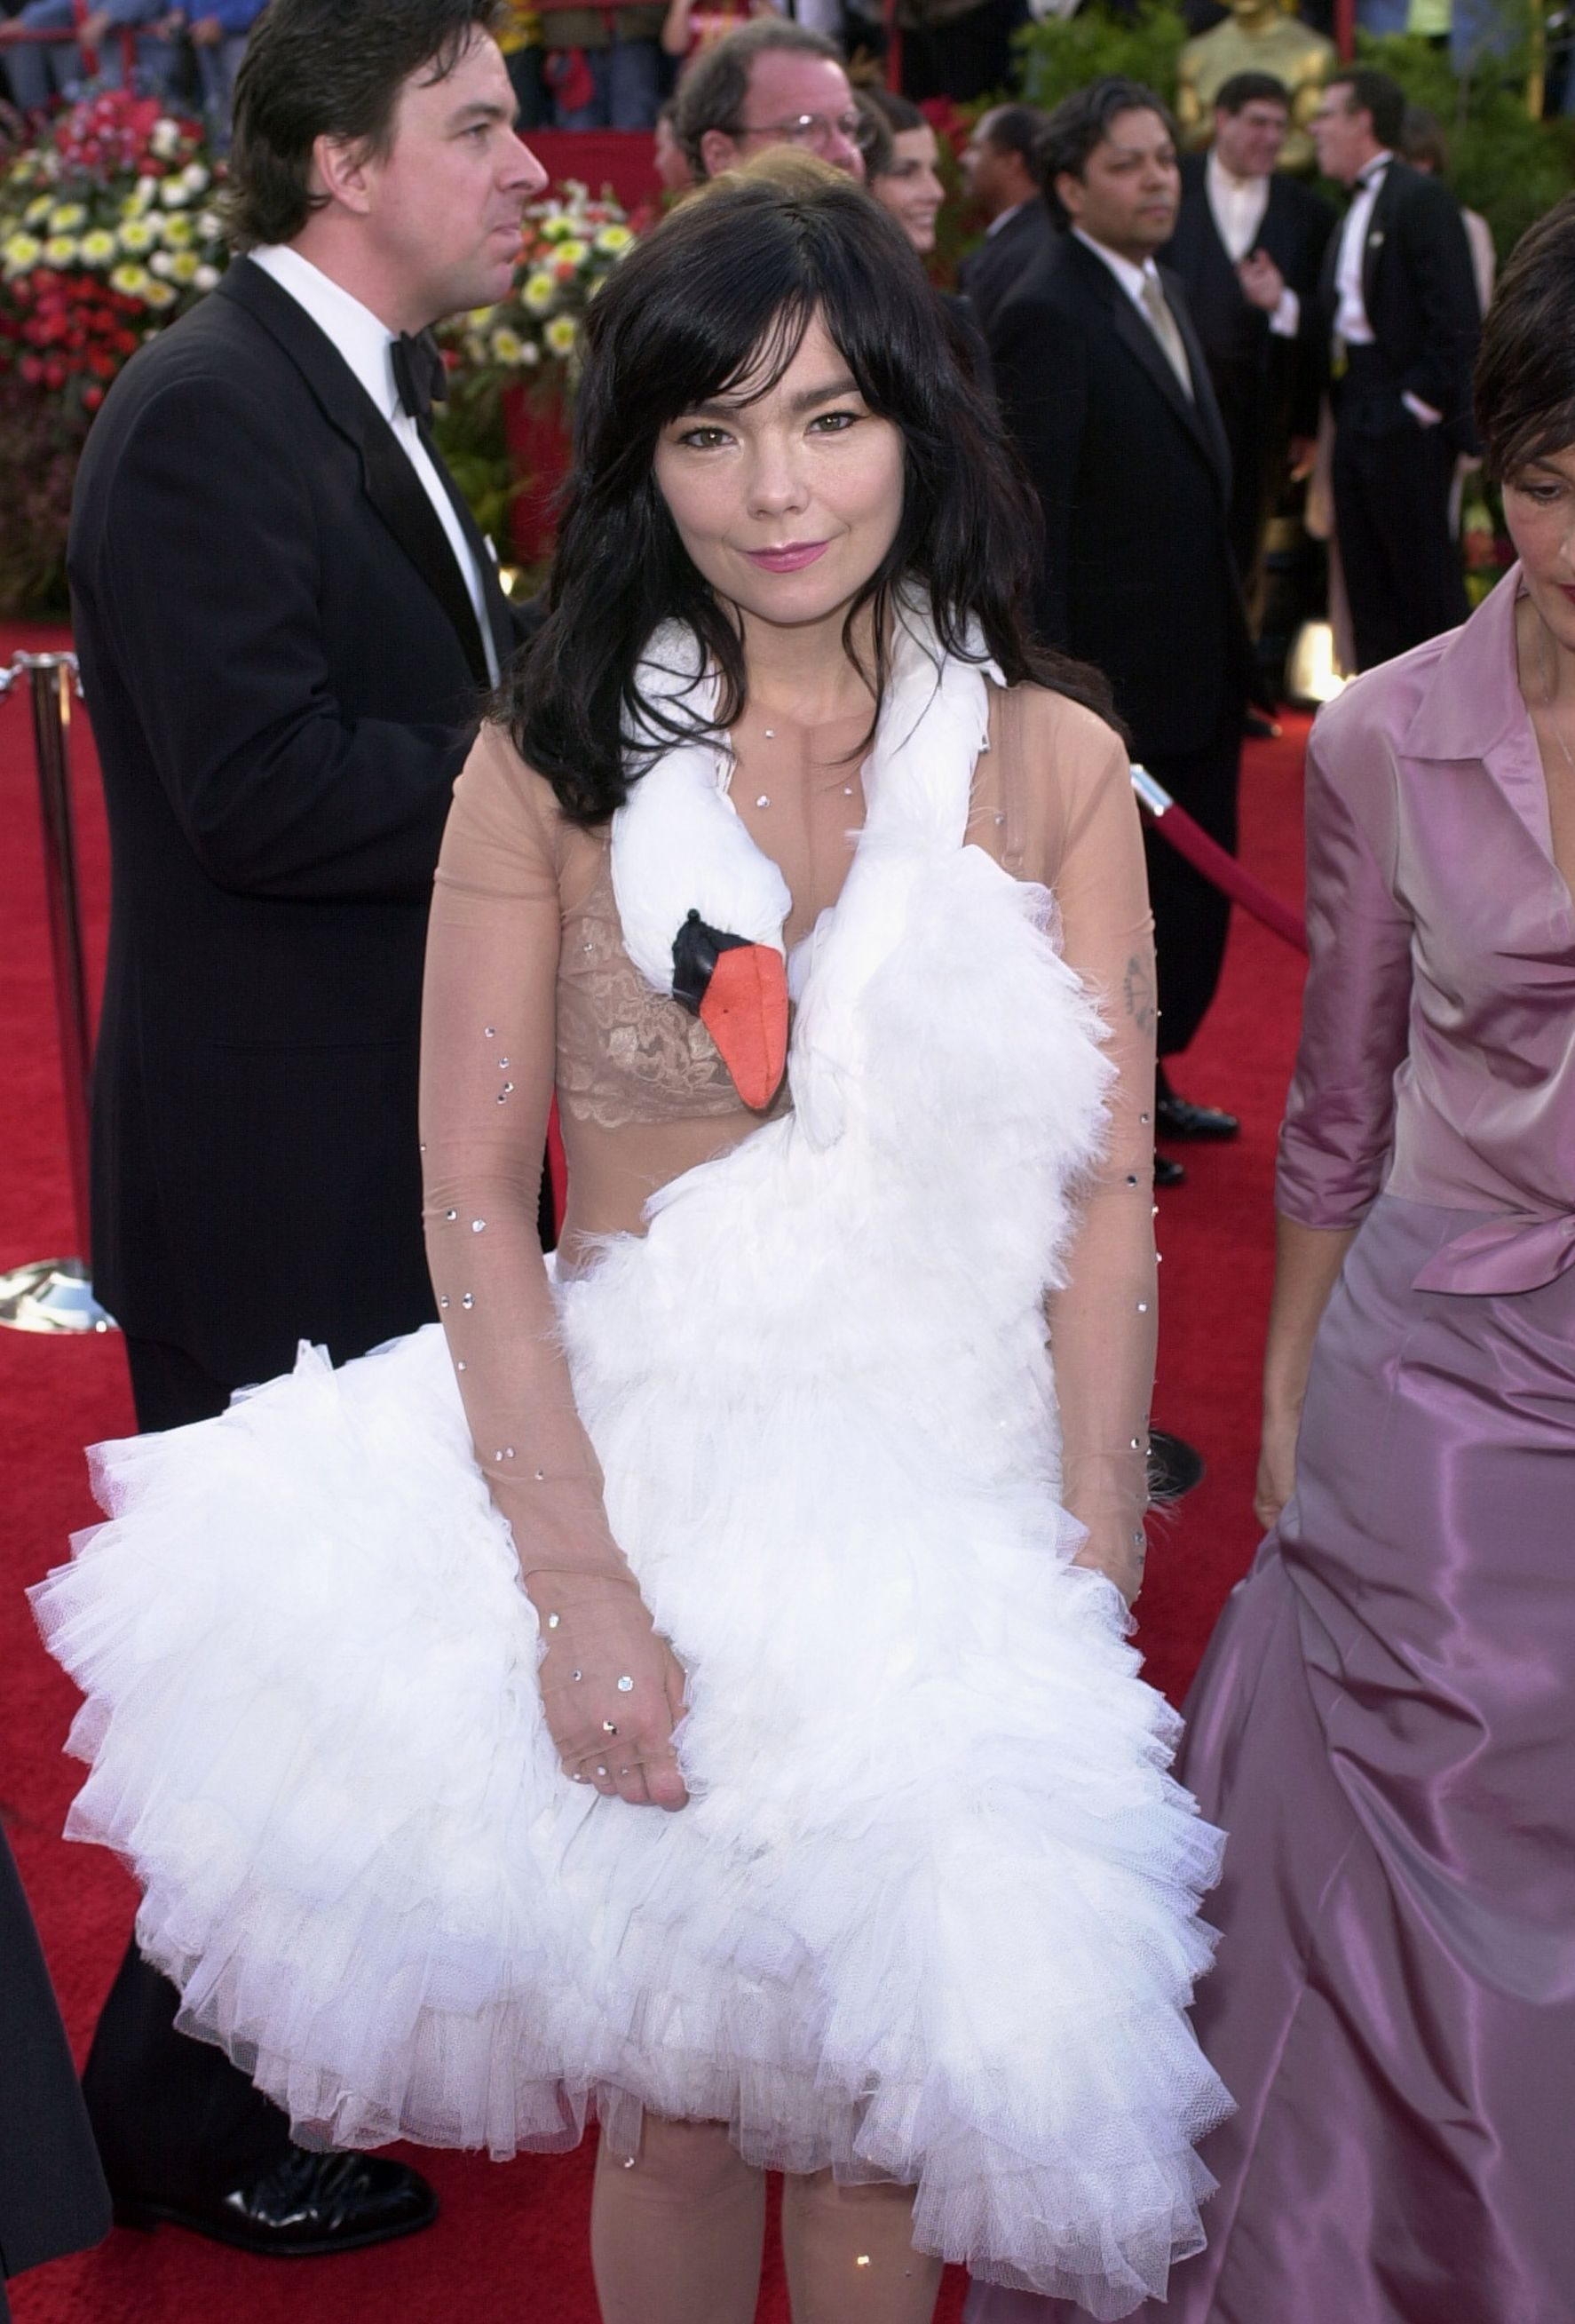 """Mandatory Credit: Photo by Michael Caulfield/AP/Shutterstock (6464400a) Bjork Singer Bjork, wearing a Marjan Pejoski swan gown, arrives at the 73rd annual Academy Awards, in Los Angeles. Bjork is nominated for best song for """"I've Seen it All"""" from the film """"Dancer in the Dark 2001 Academy Awards, Los Angeles, USA"""